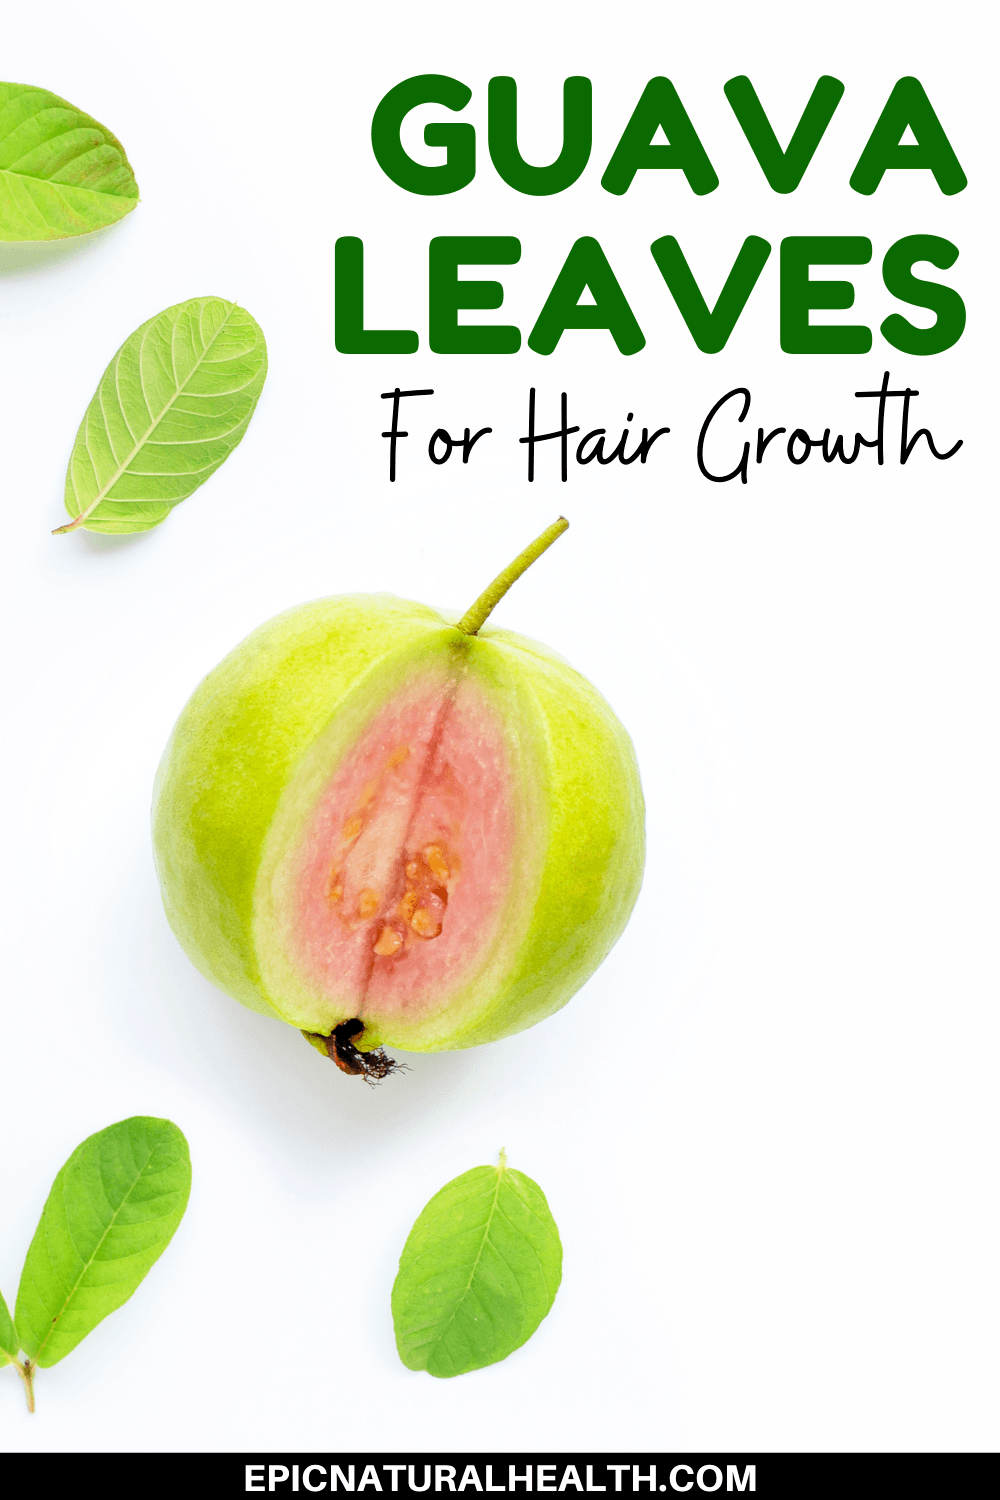 guava leavs for hair growth